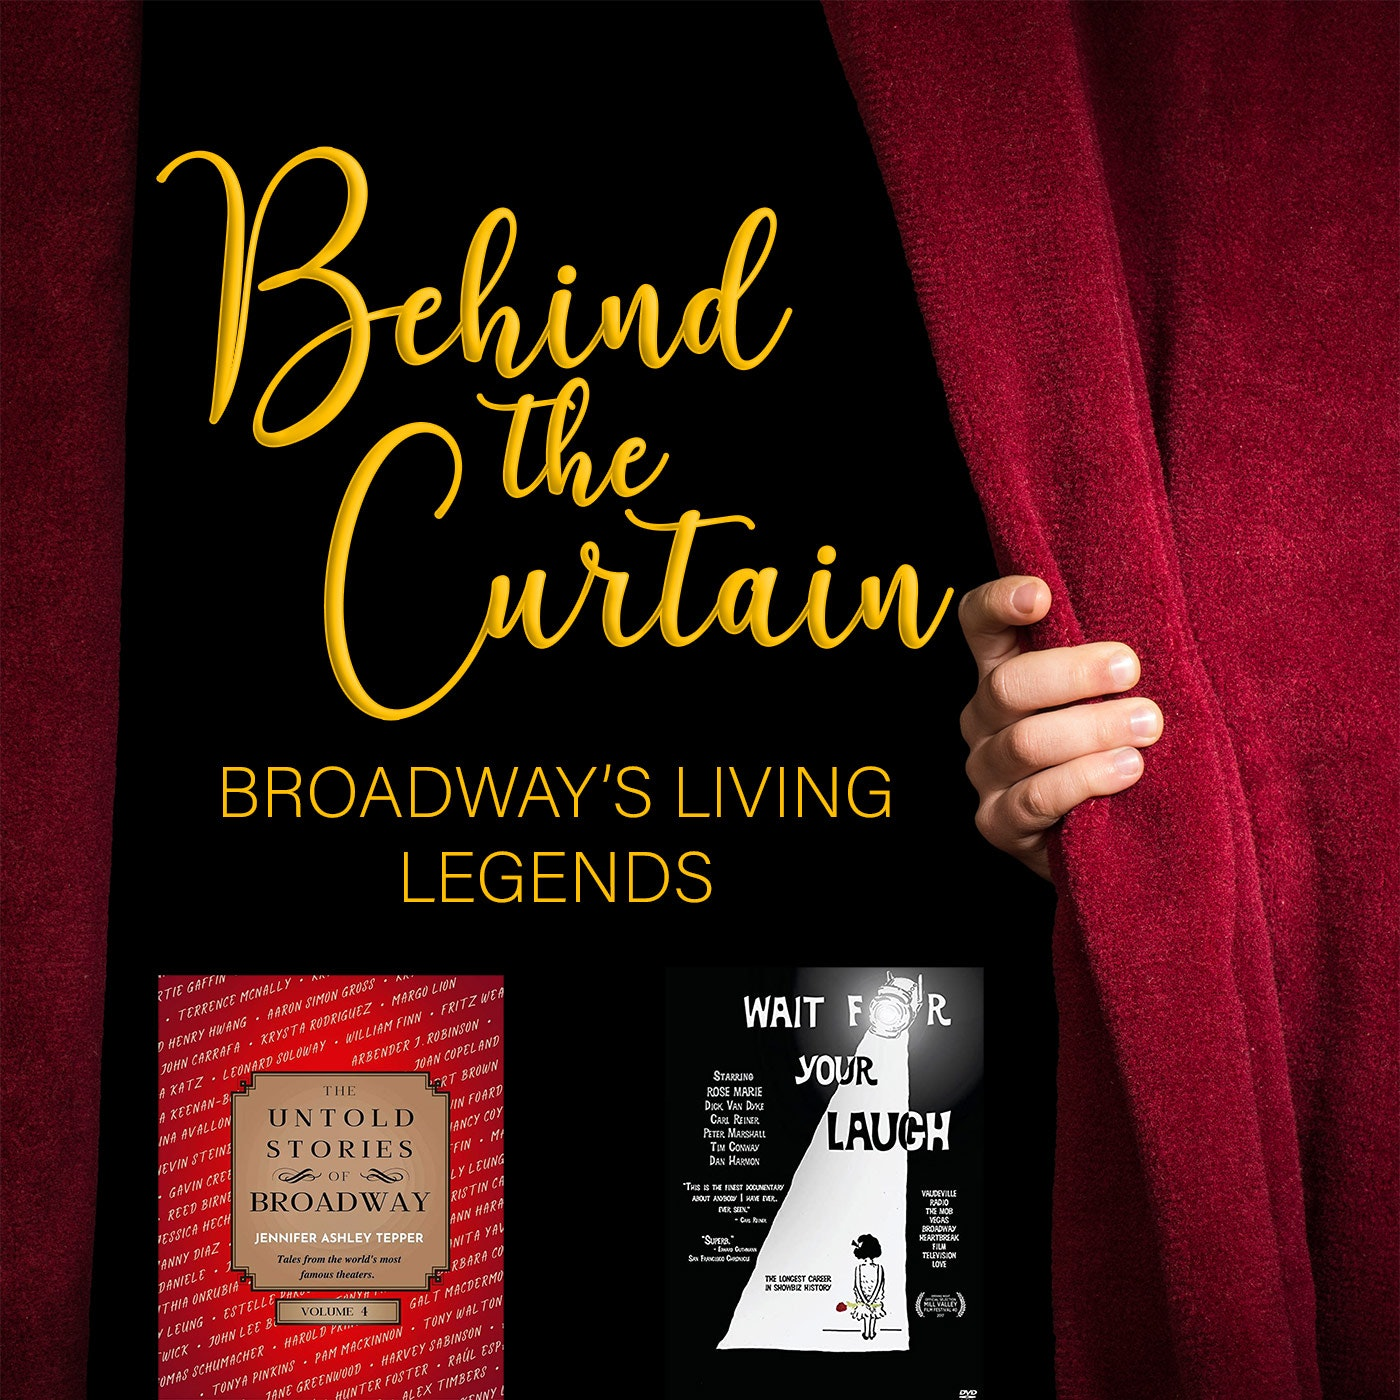 Our Favorite Things #255: The Untold Stories of Broadway (Vol. 4) & Wait For Your Laugh